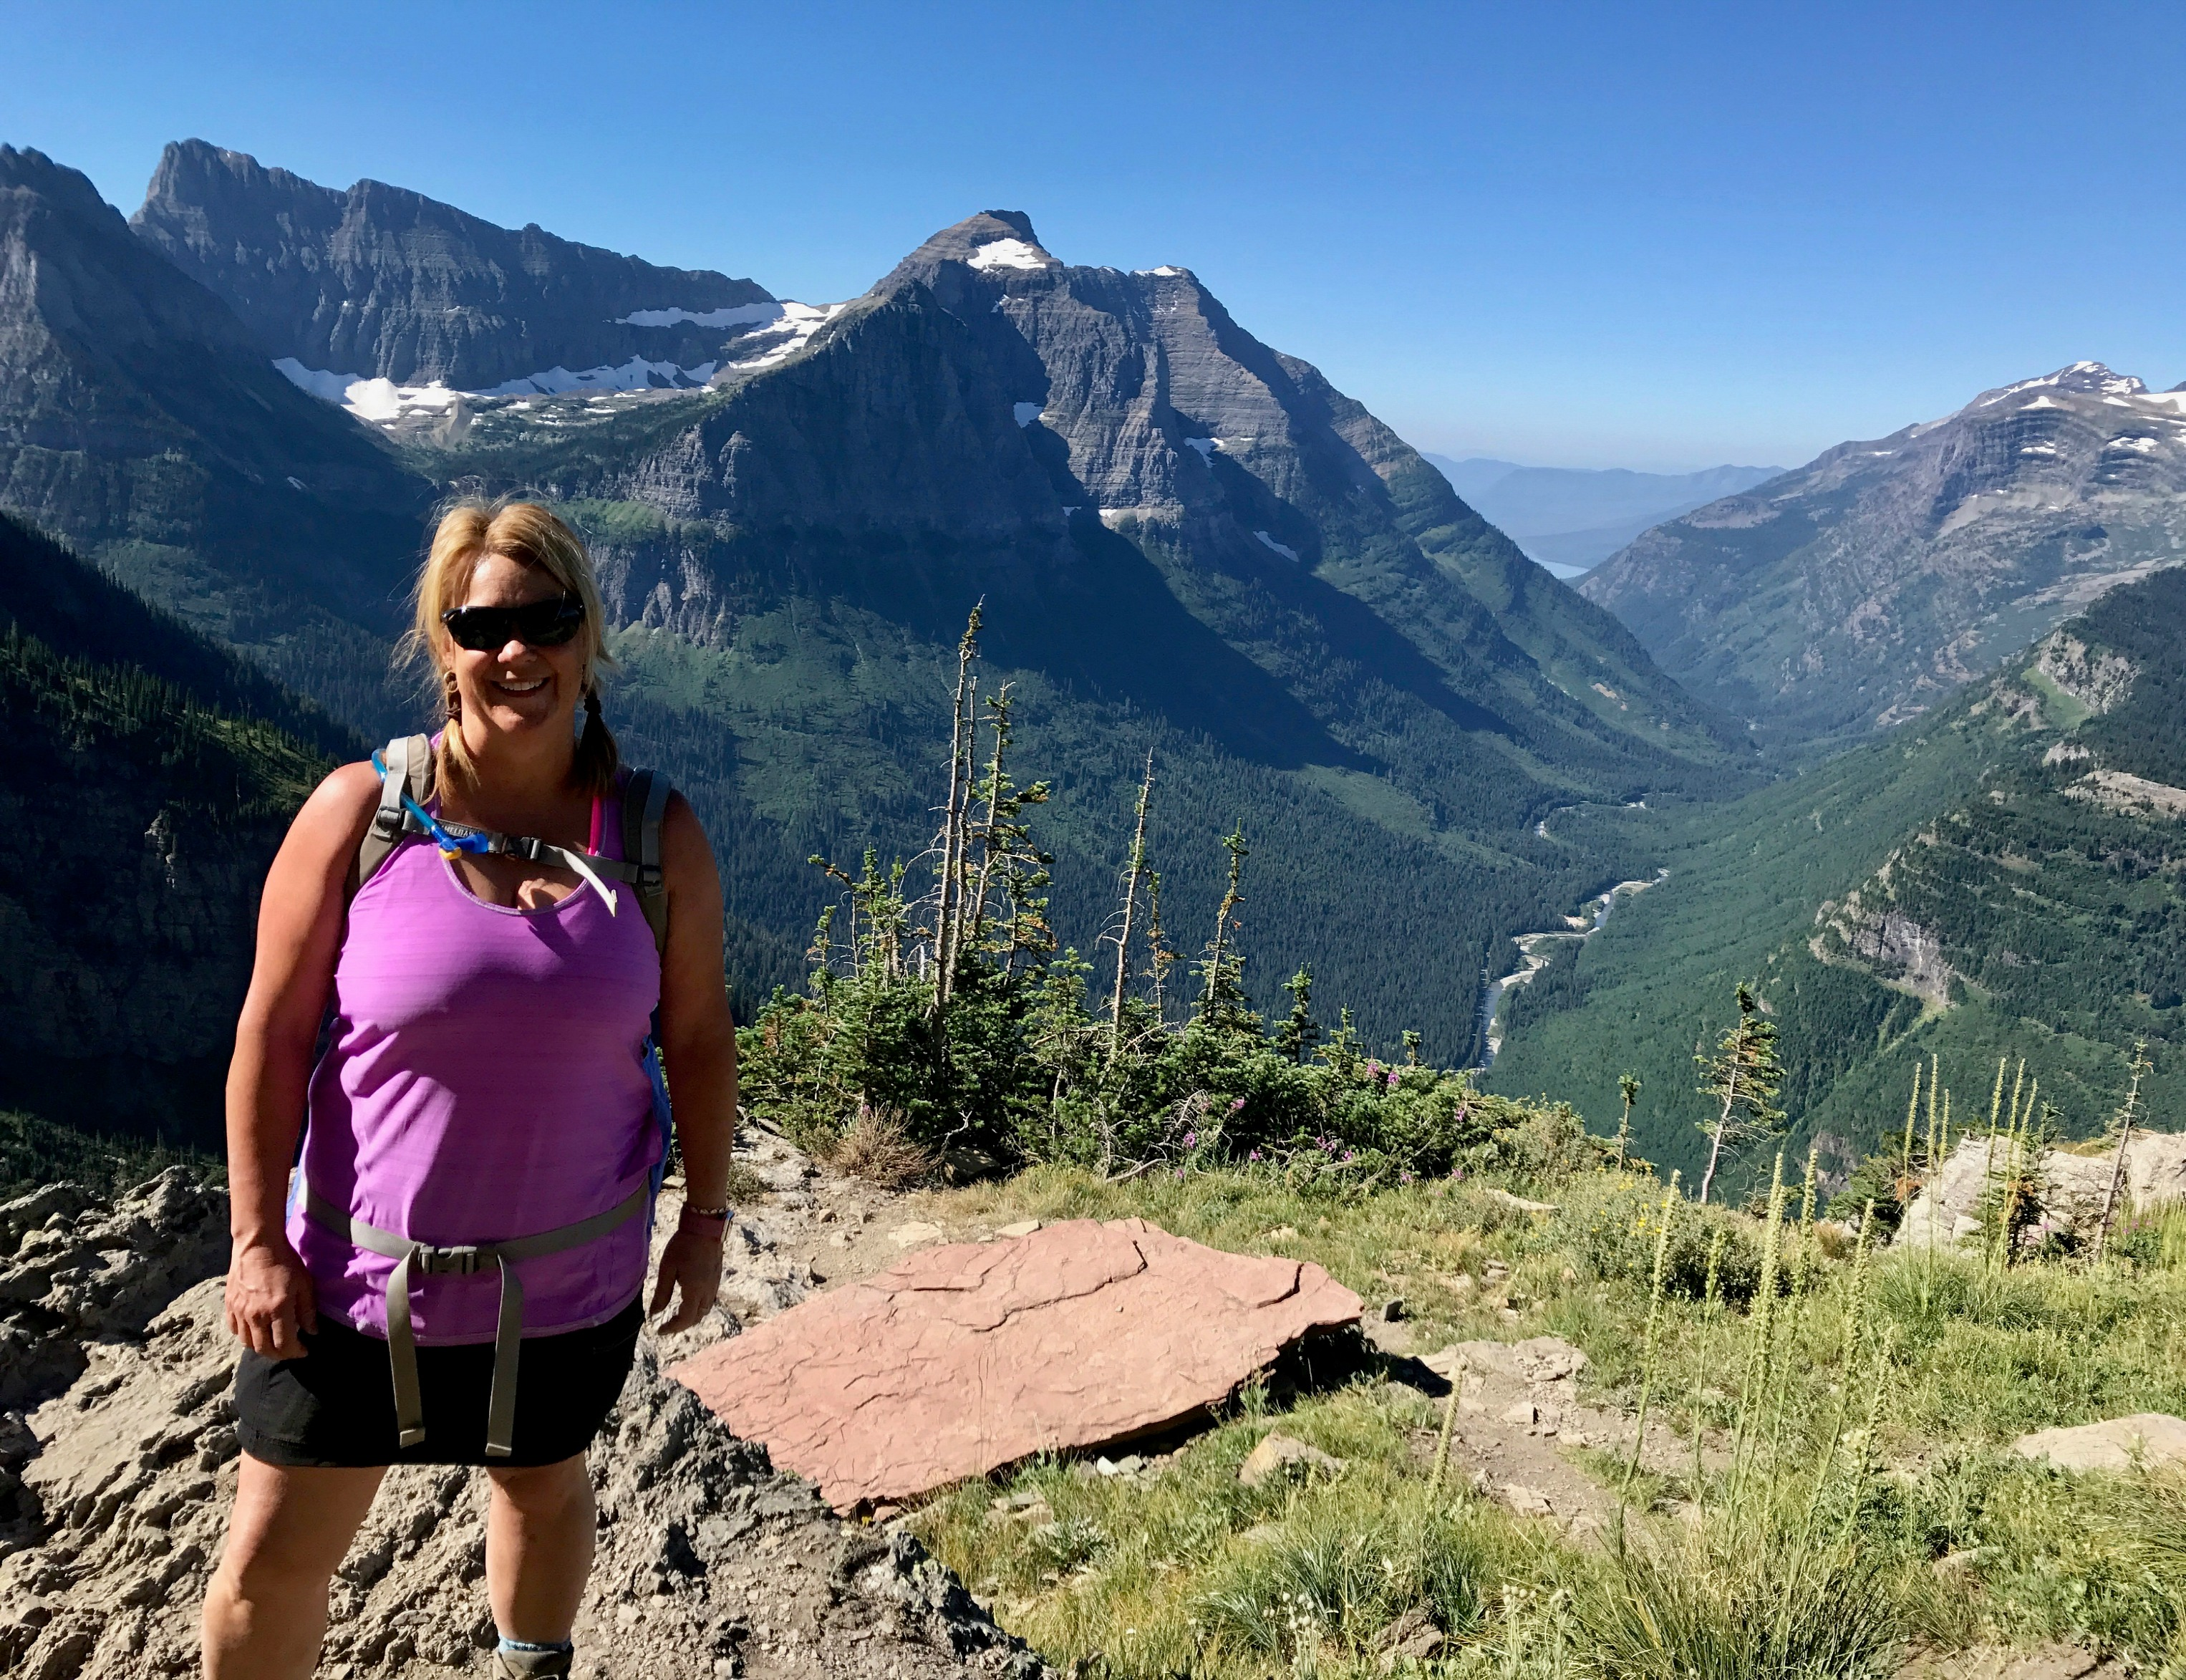 Hiking the Highline Loop in Glacier National Park